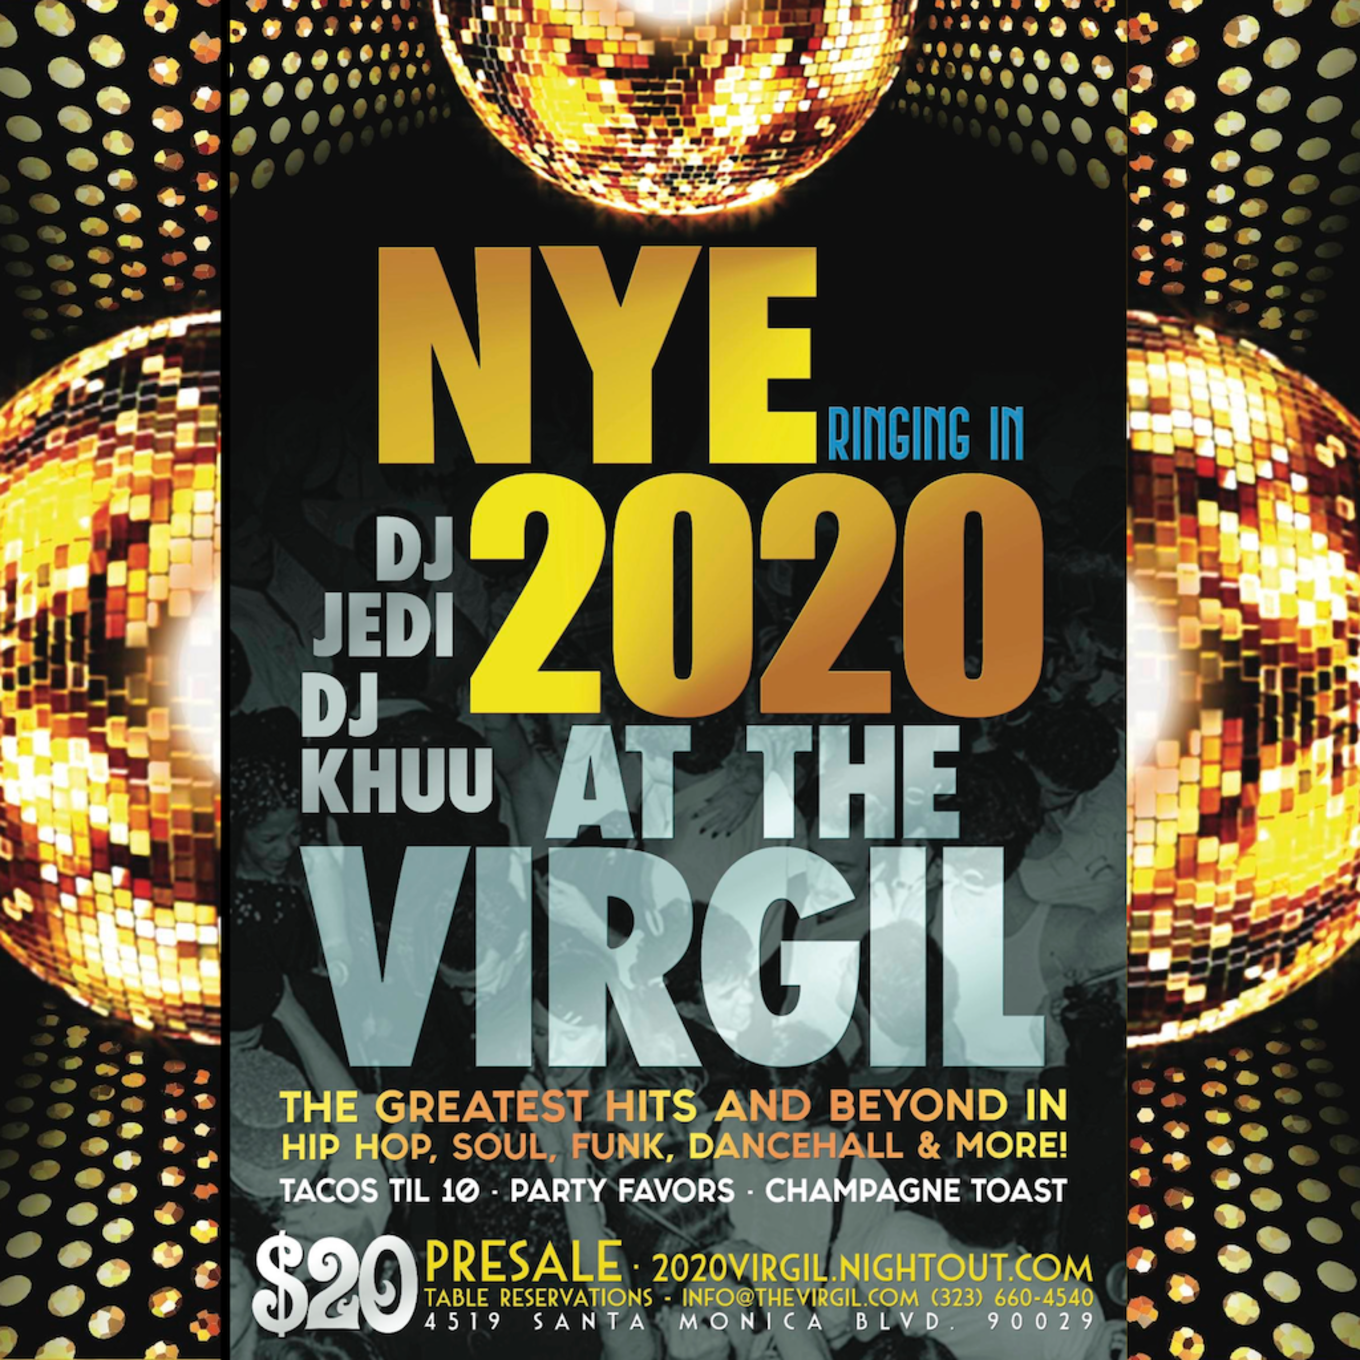 NEW YEAR'S EVE AT THE VIRGIL! - Tickets - The Virgil, Los Angeles, CA - December 31, 2019